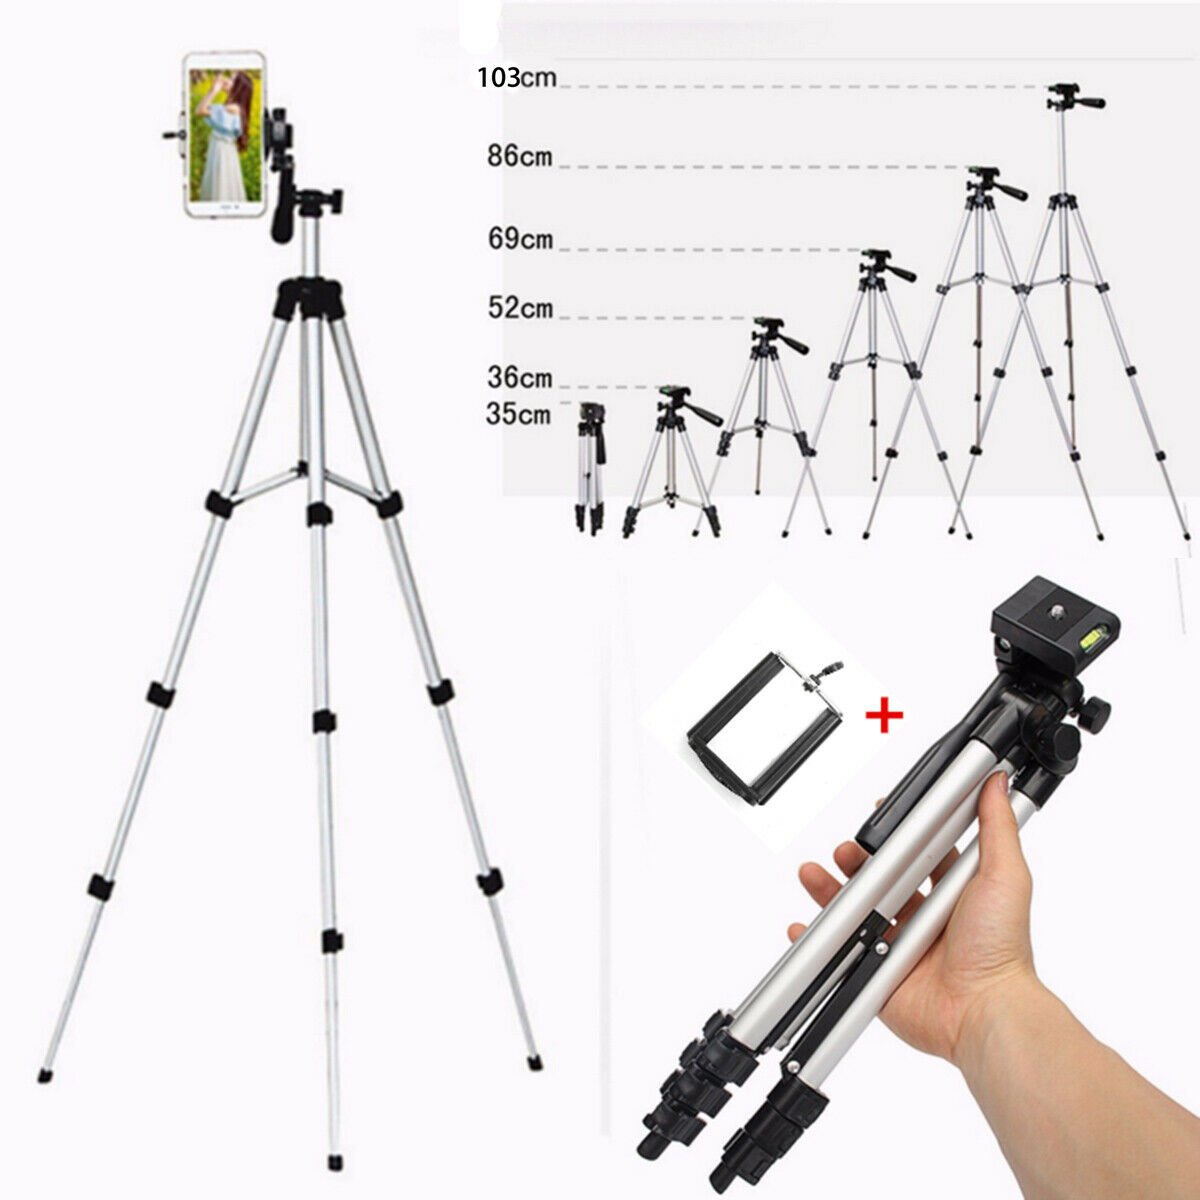 40'' Portable Travel/Camera/Phone Tripod with Carry Bag for iPhone